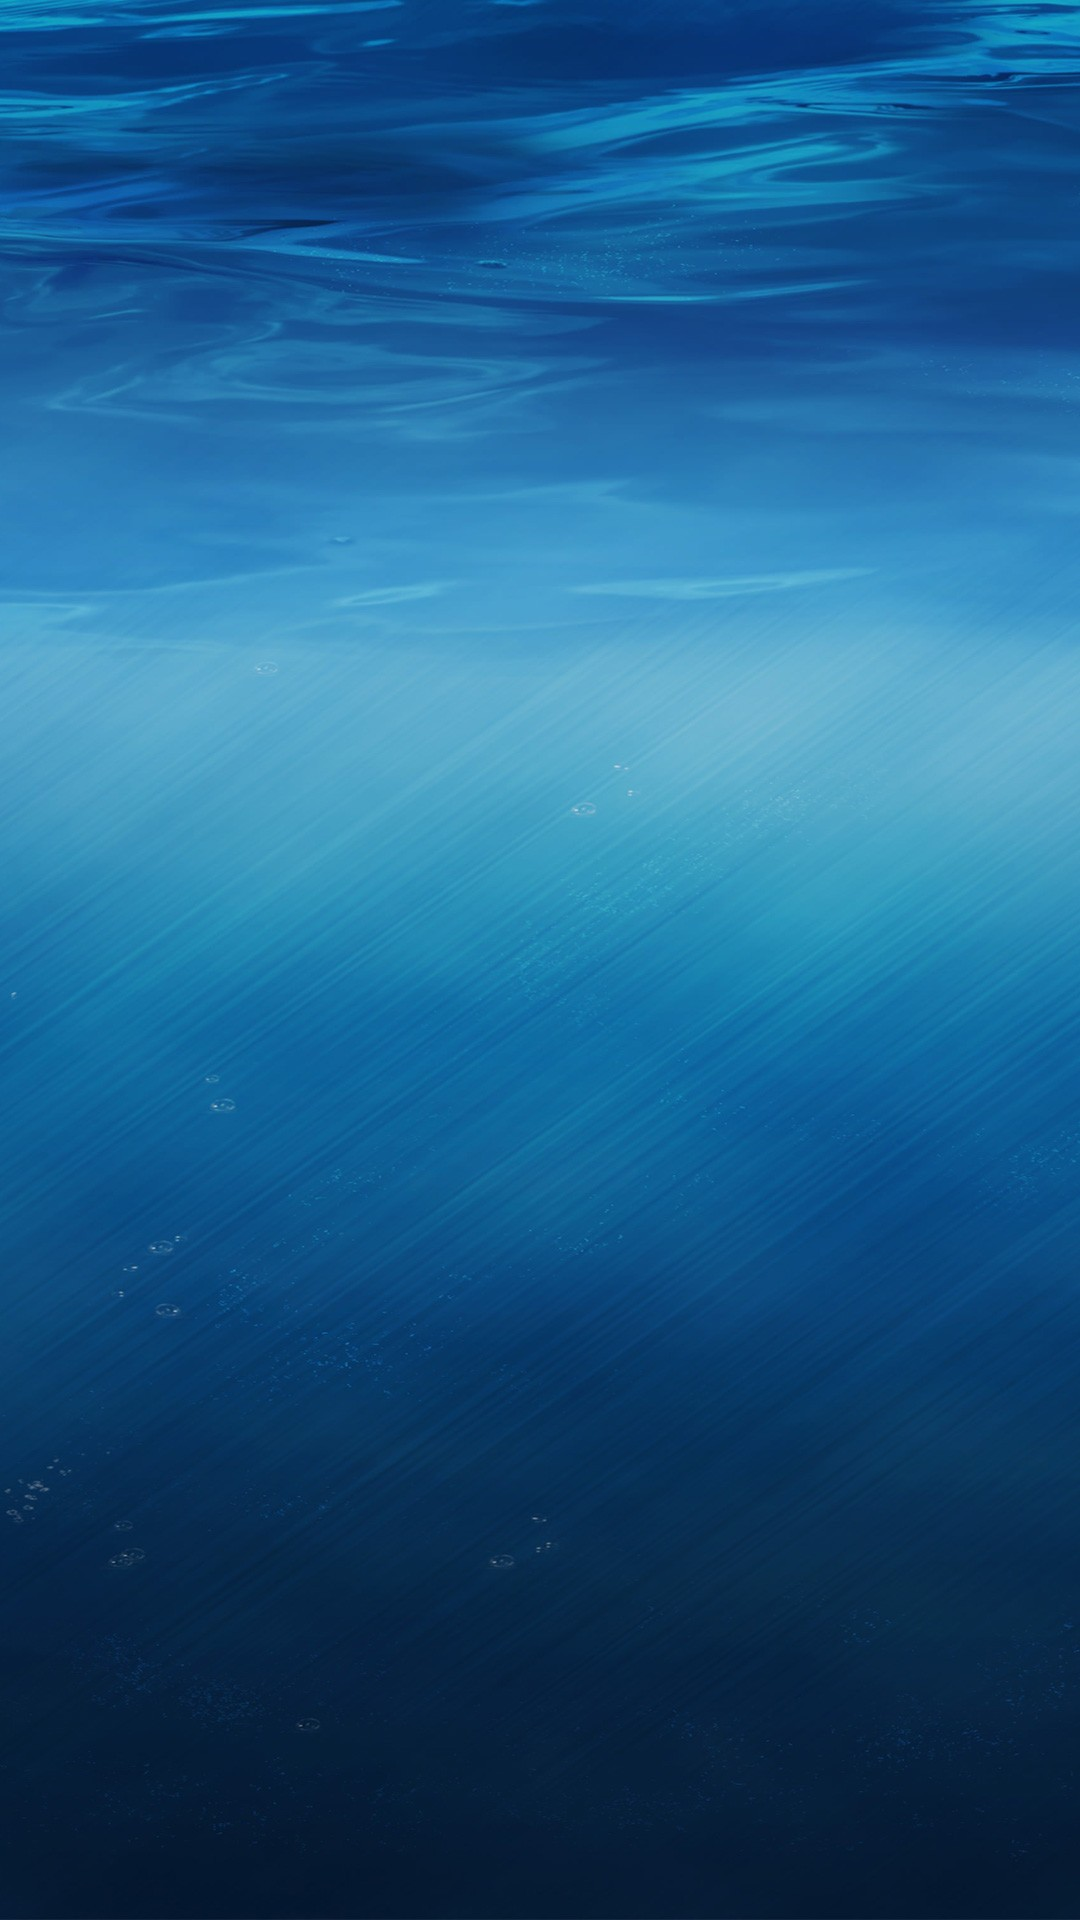 Wallpaper Desktop 3d Animation Underwater 5k Wallpapers Hd Wallpapers Id 17664